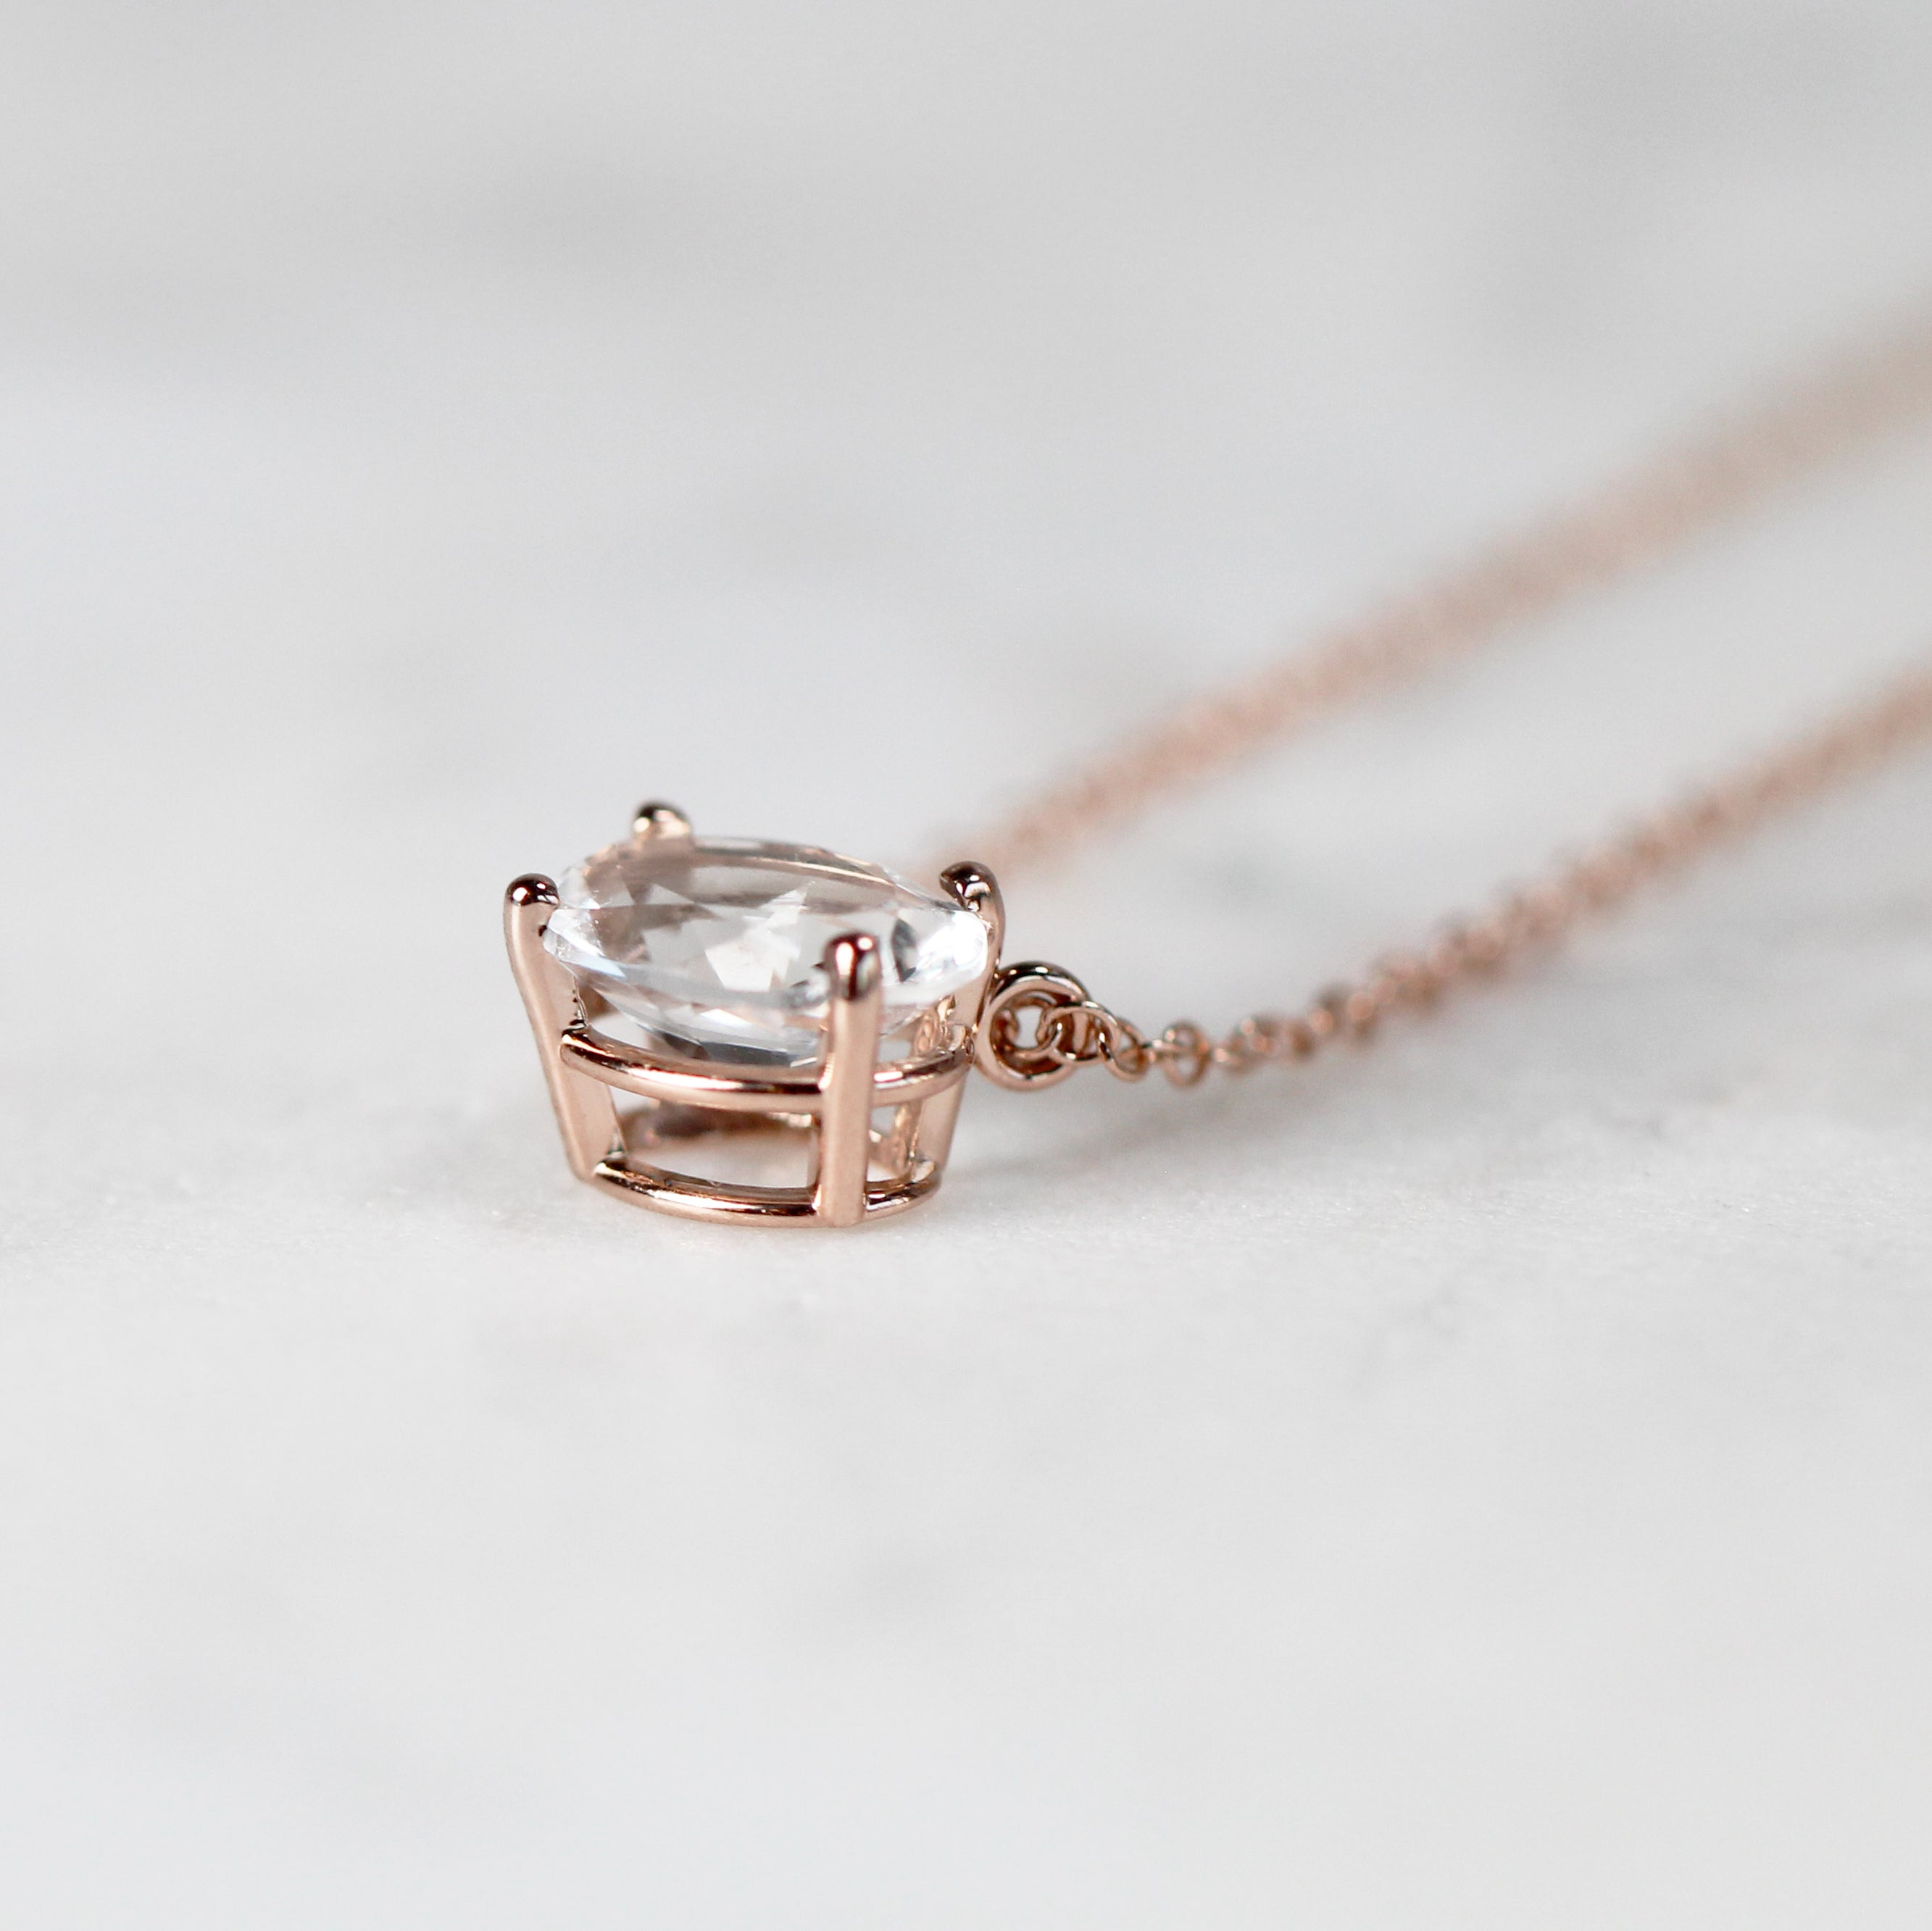 Oval White Sapphire Pendant Necklace - 14k Gold of choice - Celestial Diamonds ® by Midwinter Co.